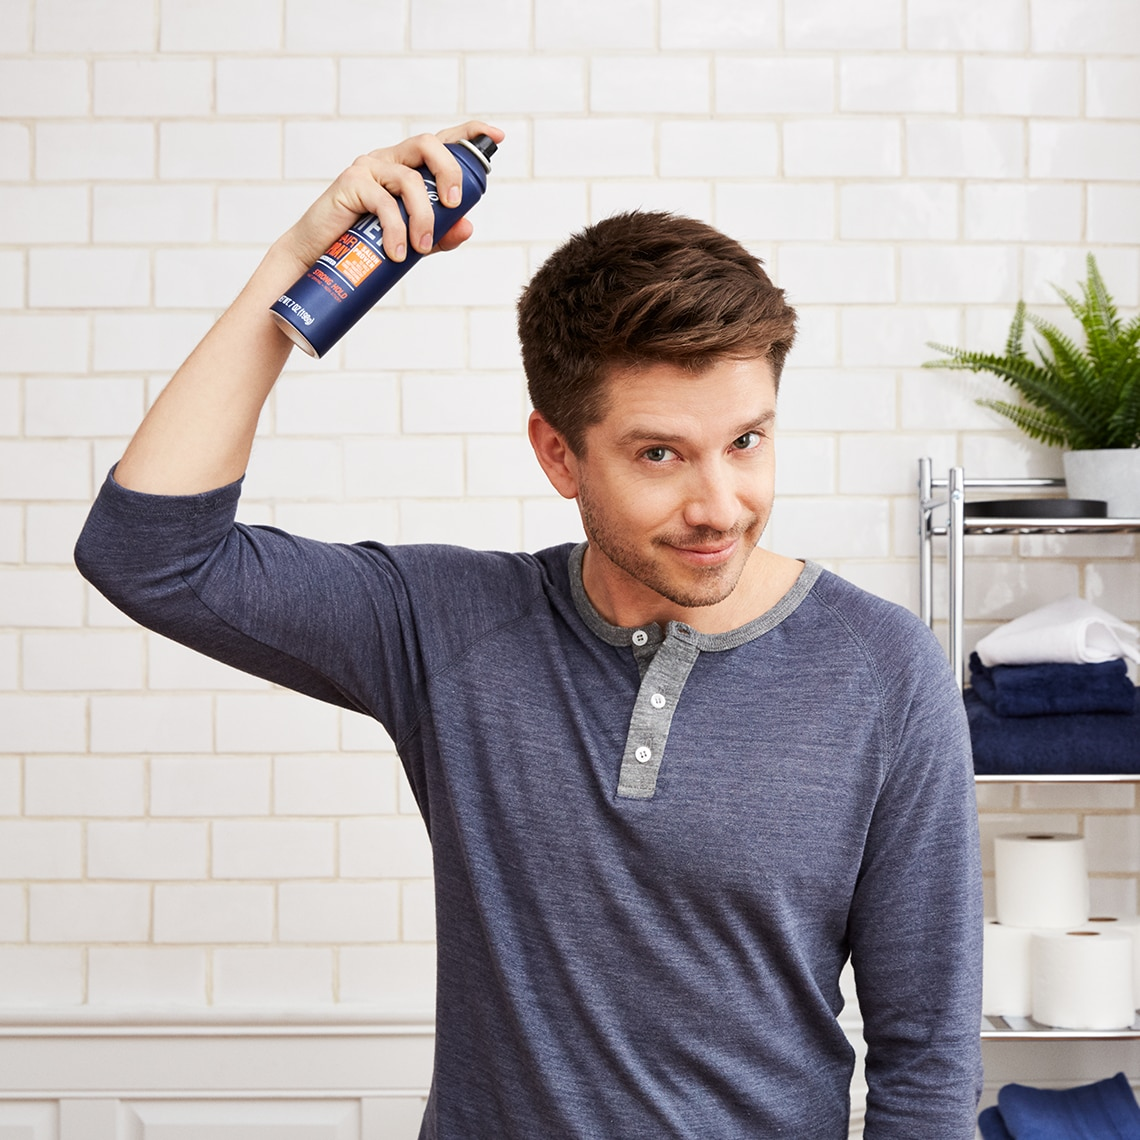 A man applies Suave Men's Hairspray to his hair while in his bathroom.